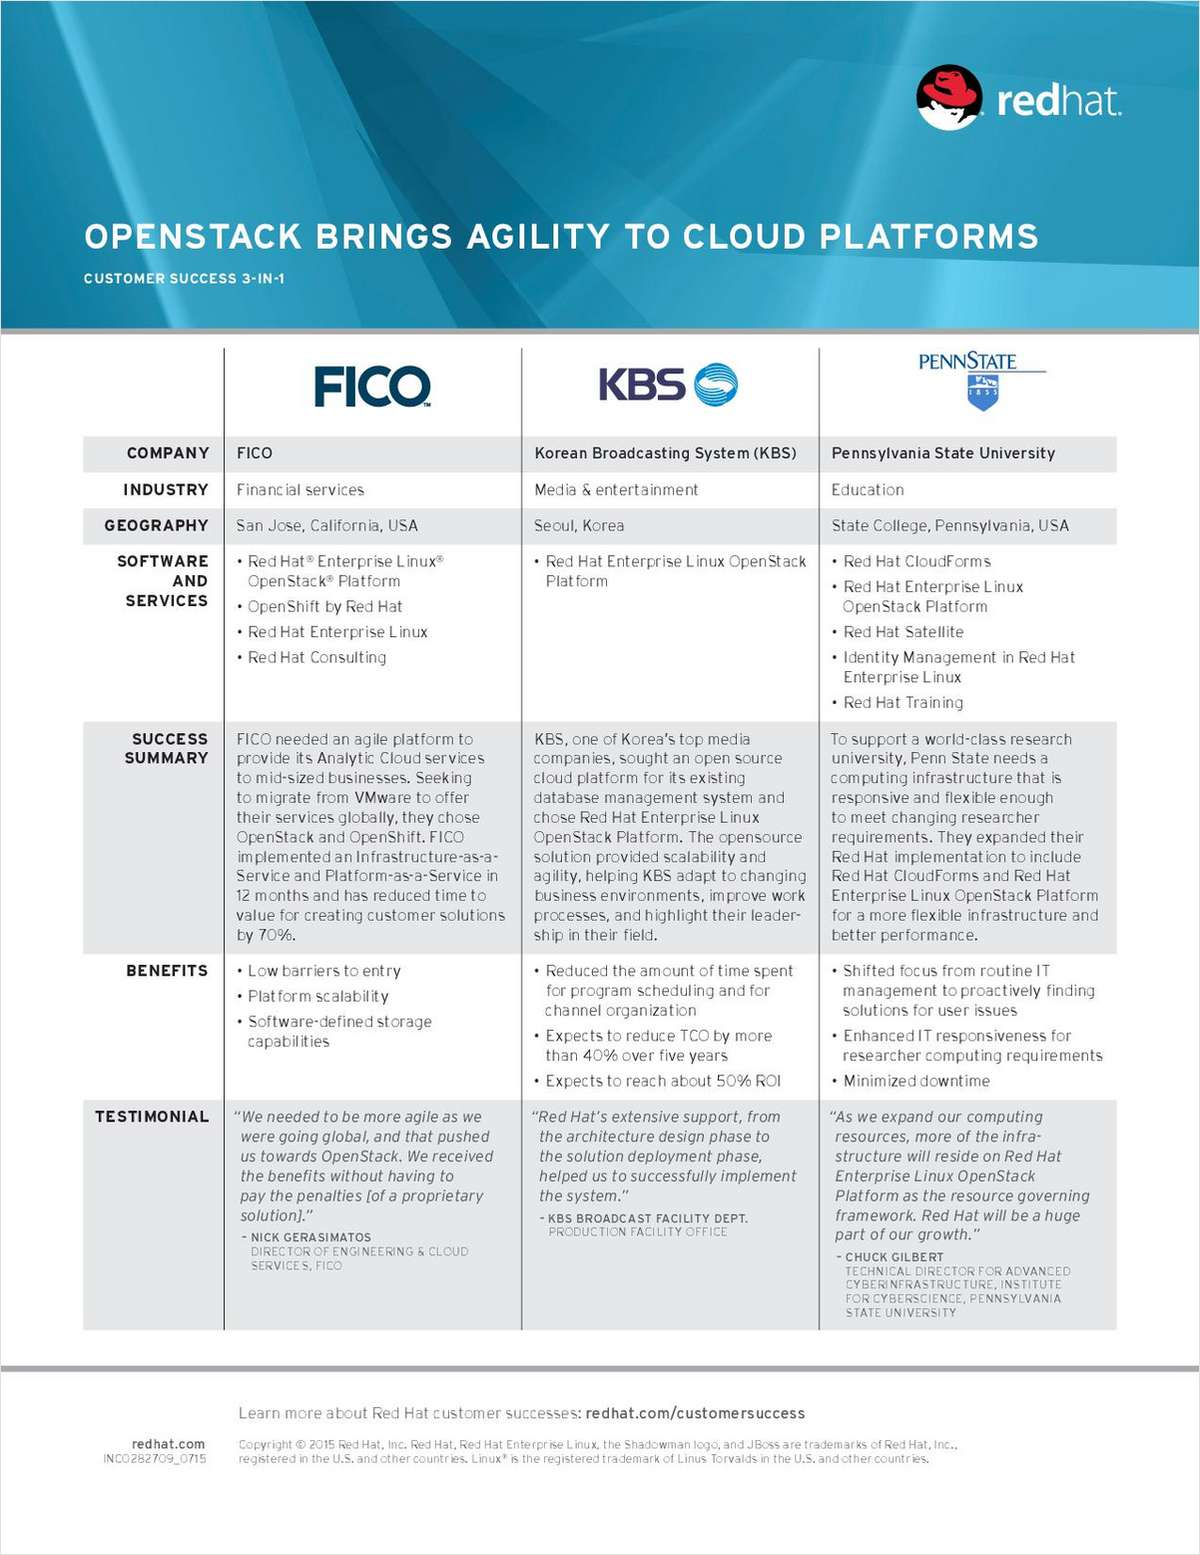 OpenStack Brings Agility to Cloud Platforms